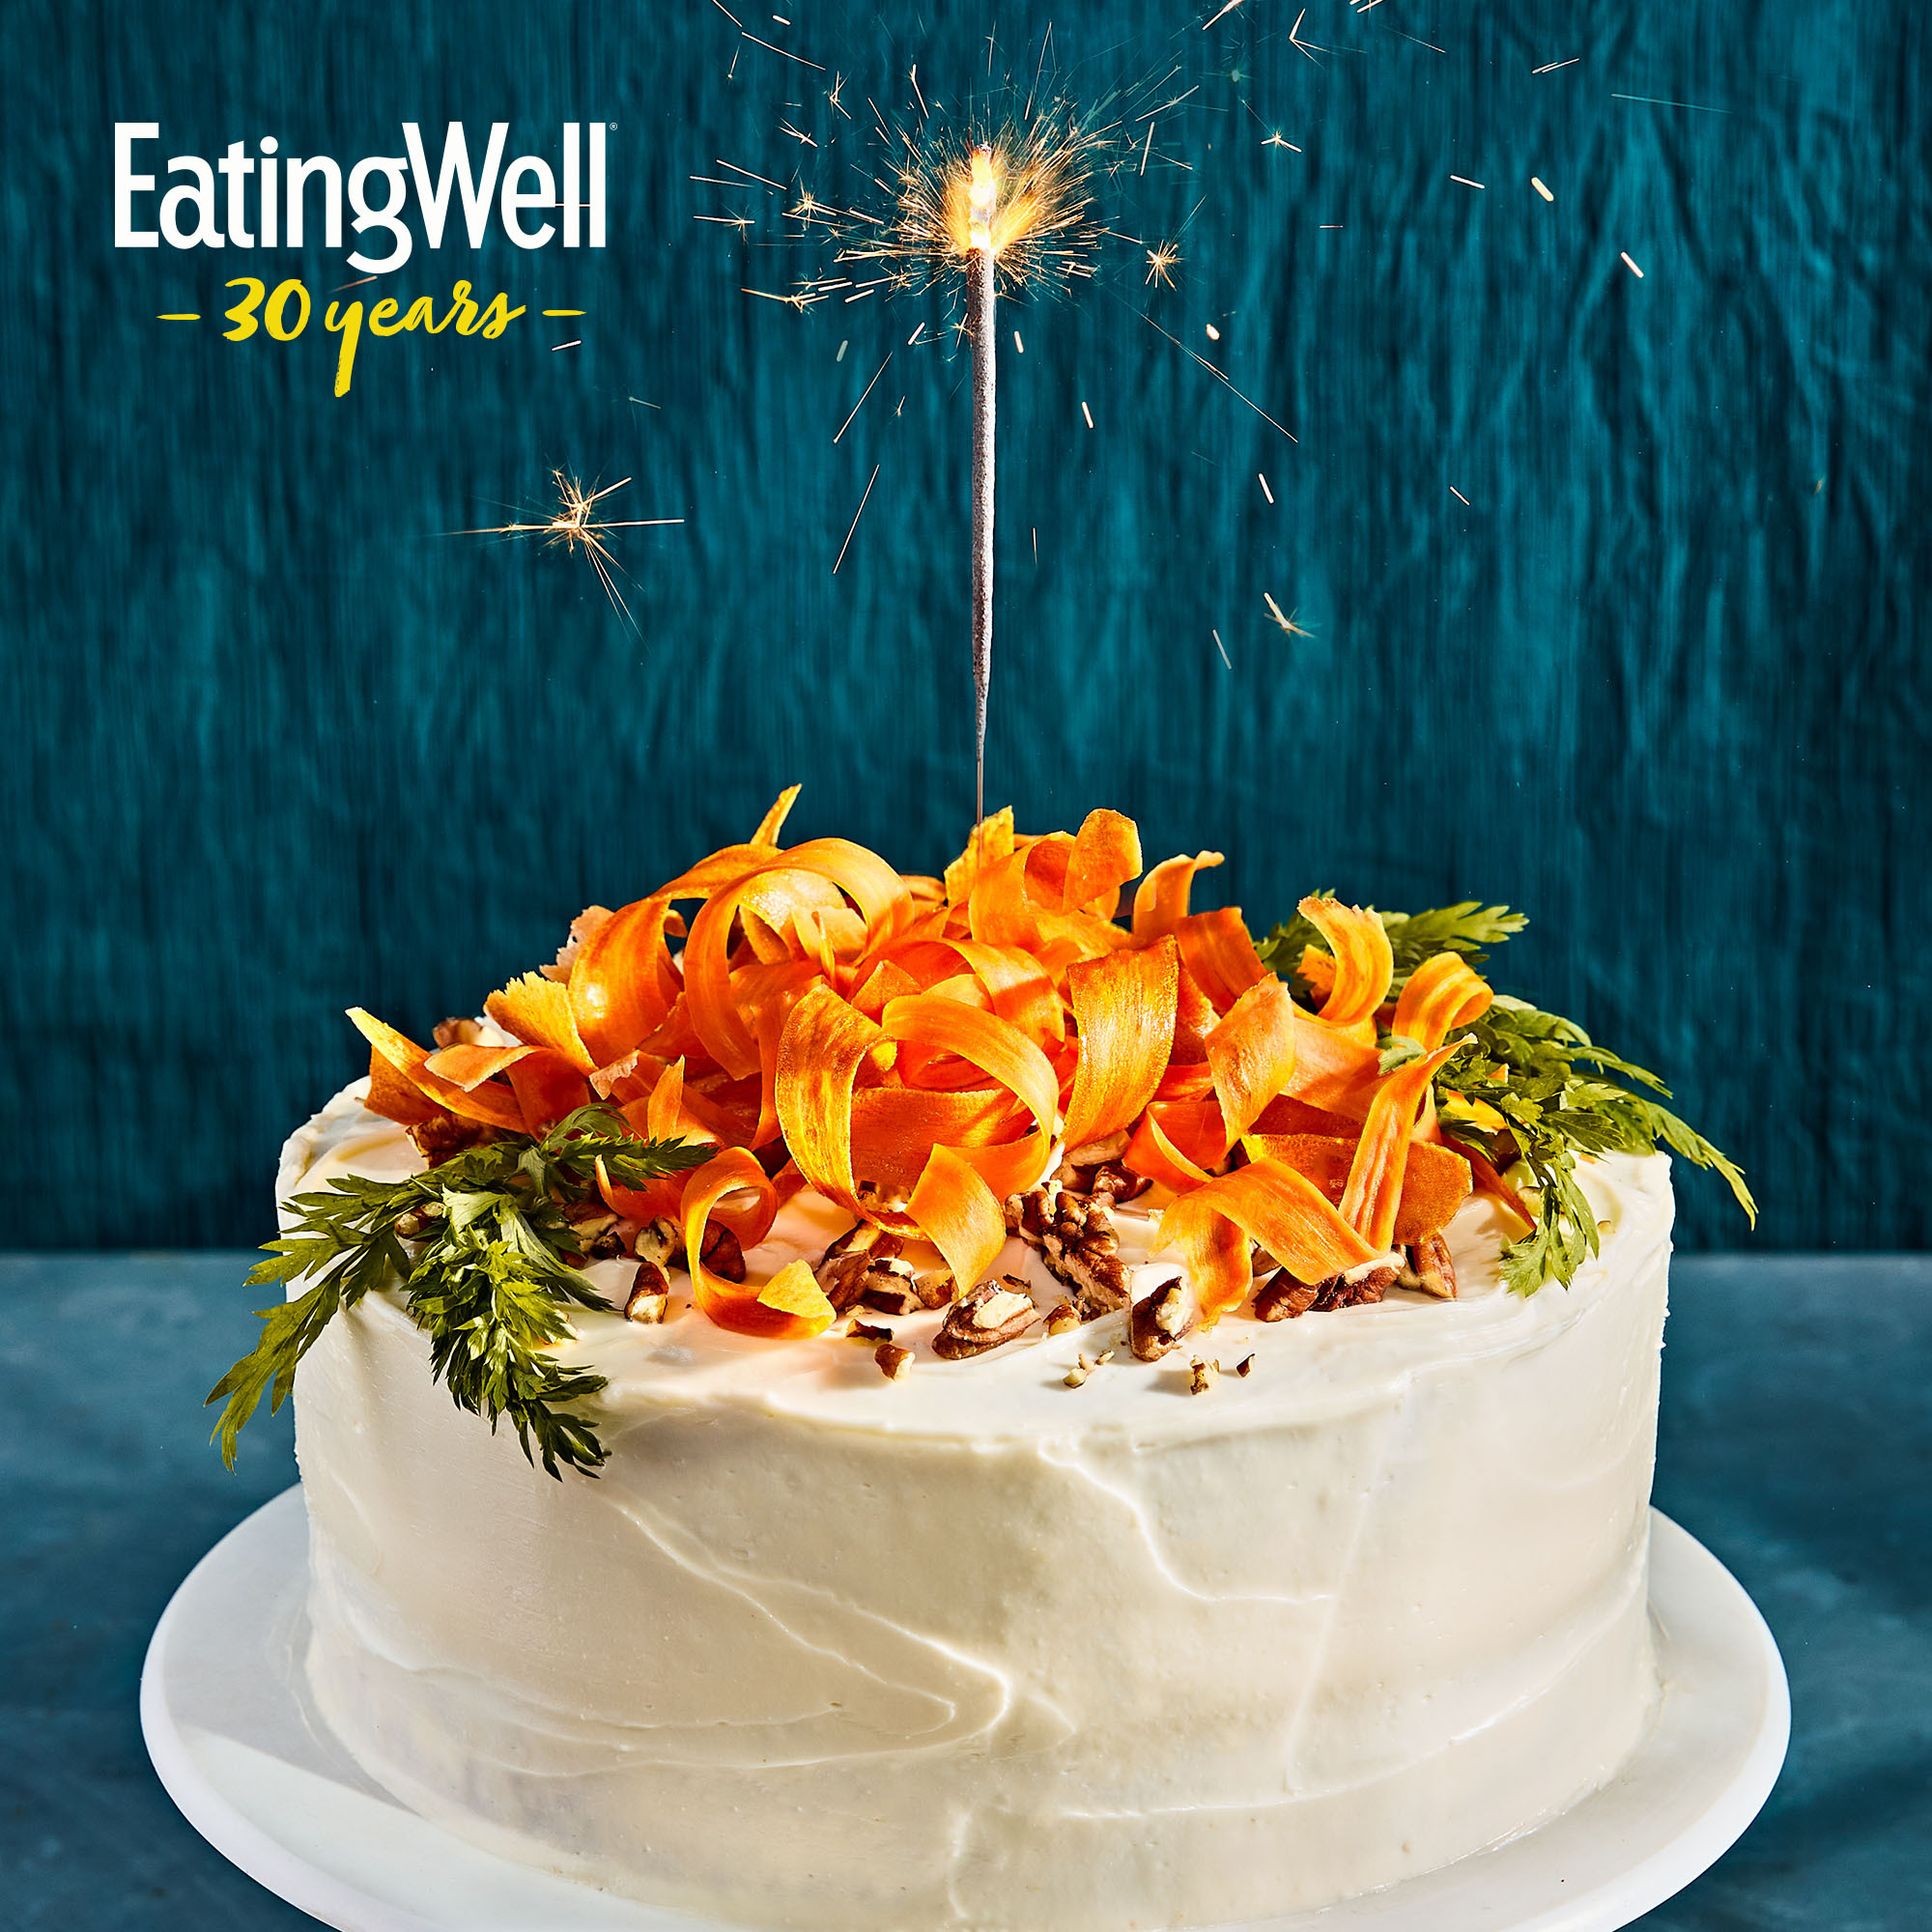 carrot cake with a sparkler on it against a blue background with EatingWell 30 years logo